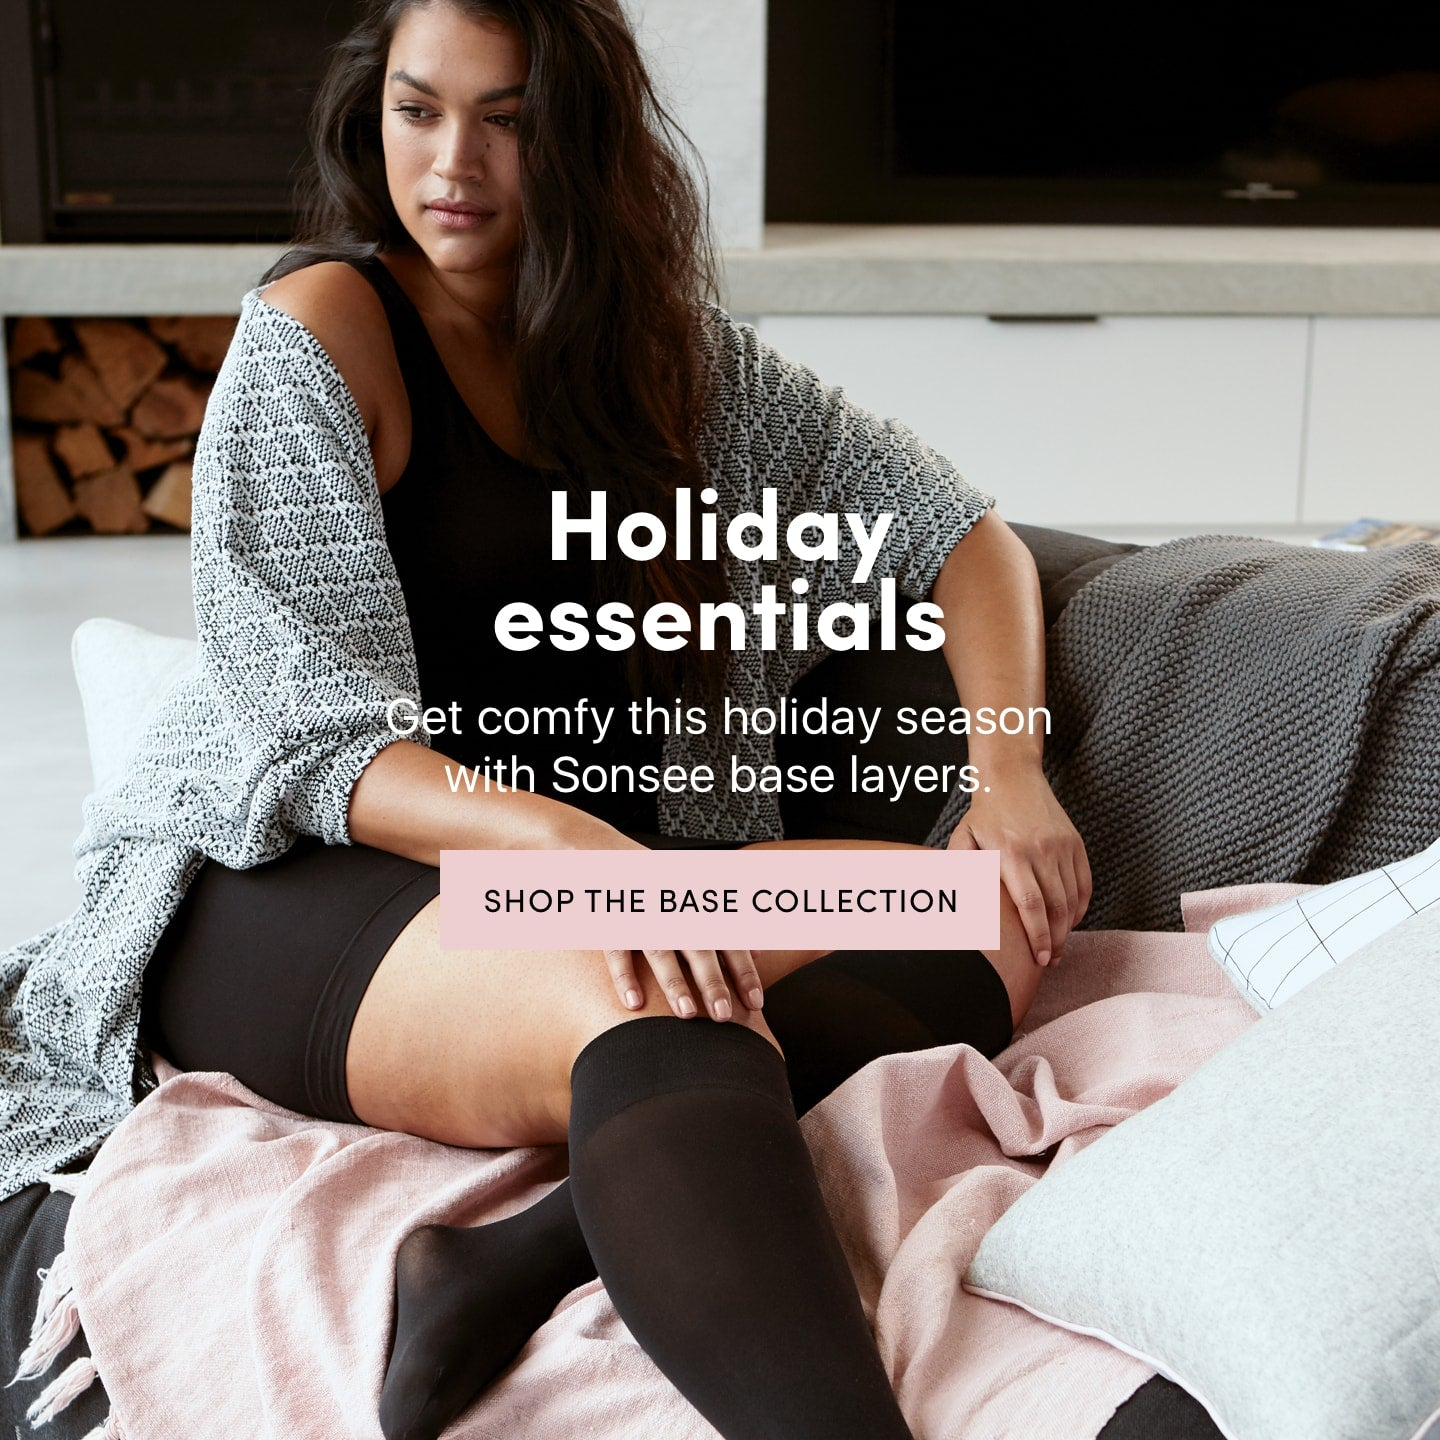 Holiday essentials. Get comfy this holiday season with Sonsee base layers. Shop the Base Collection